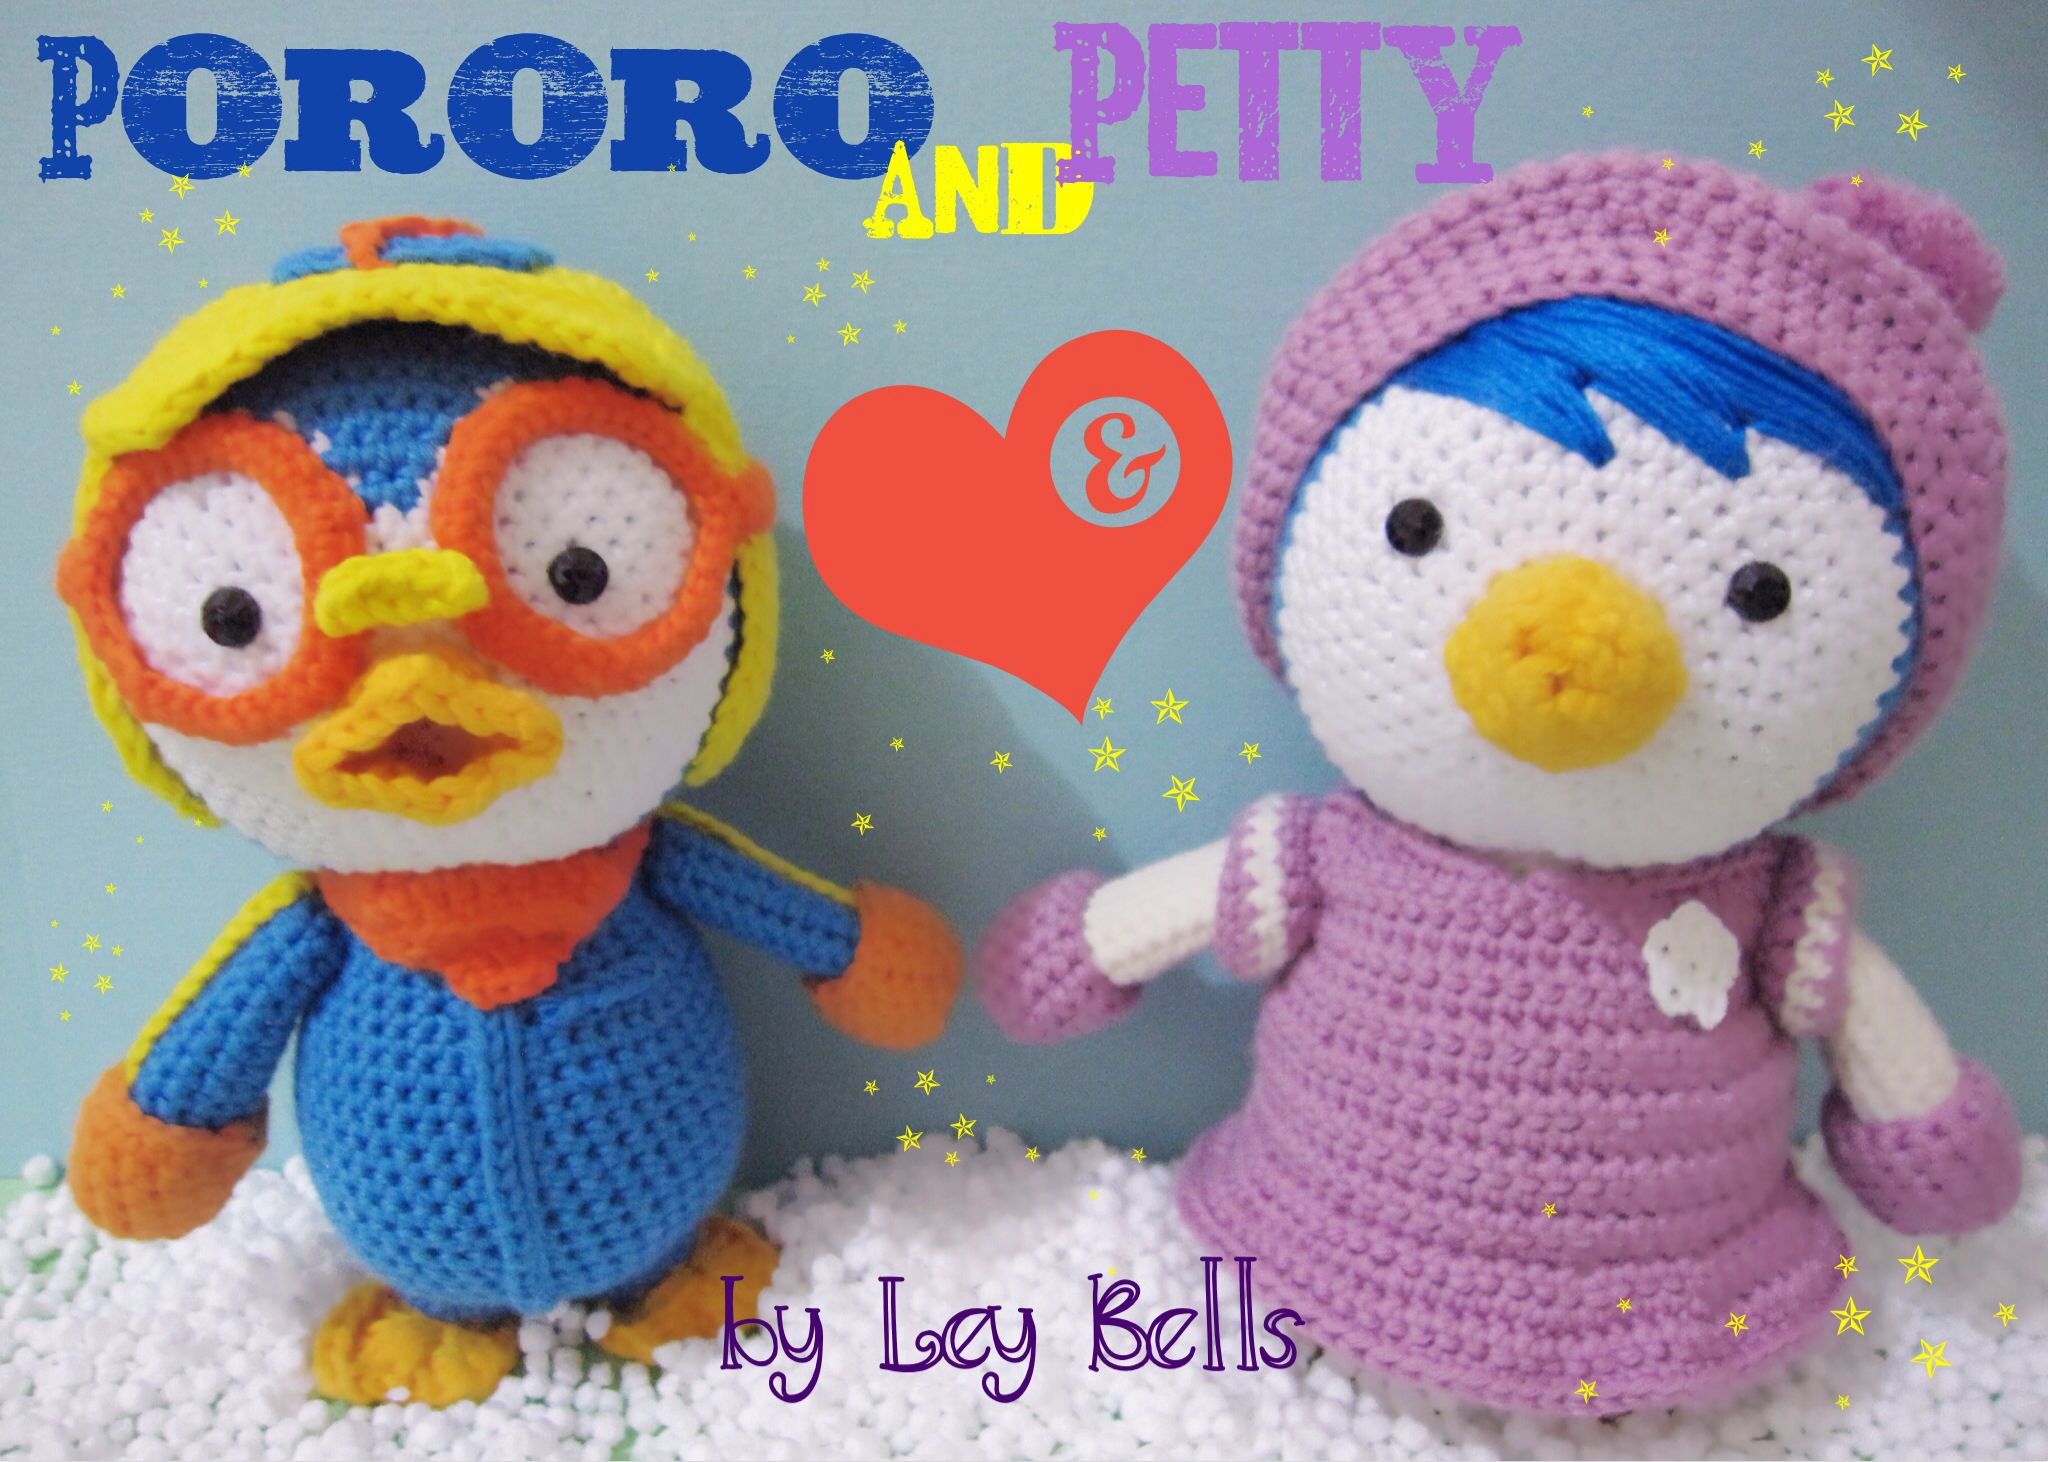 Amigurumi Doraemon Pattern : Amigurumi pororo and petty by leybells facebook leybells